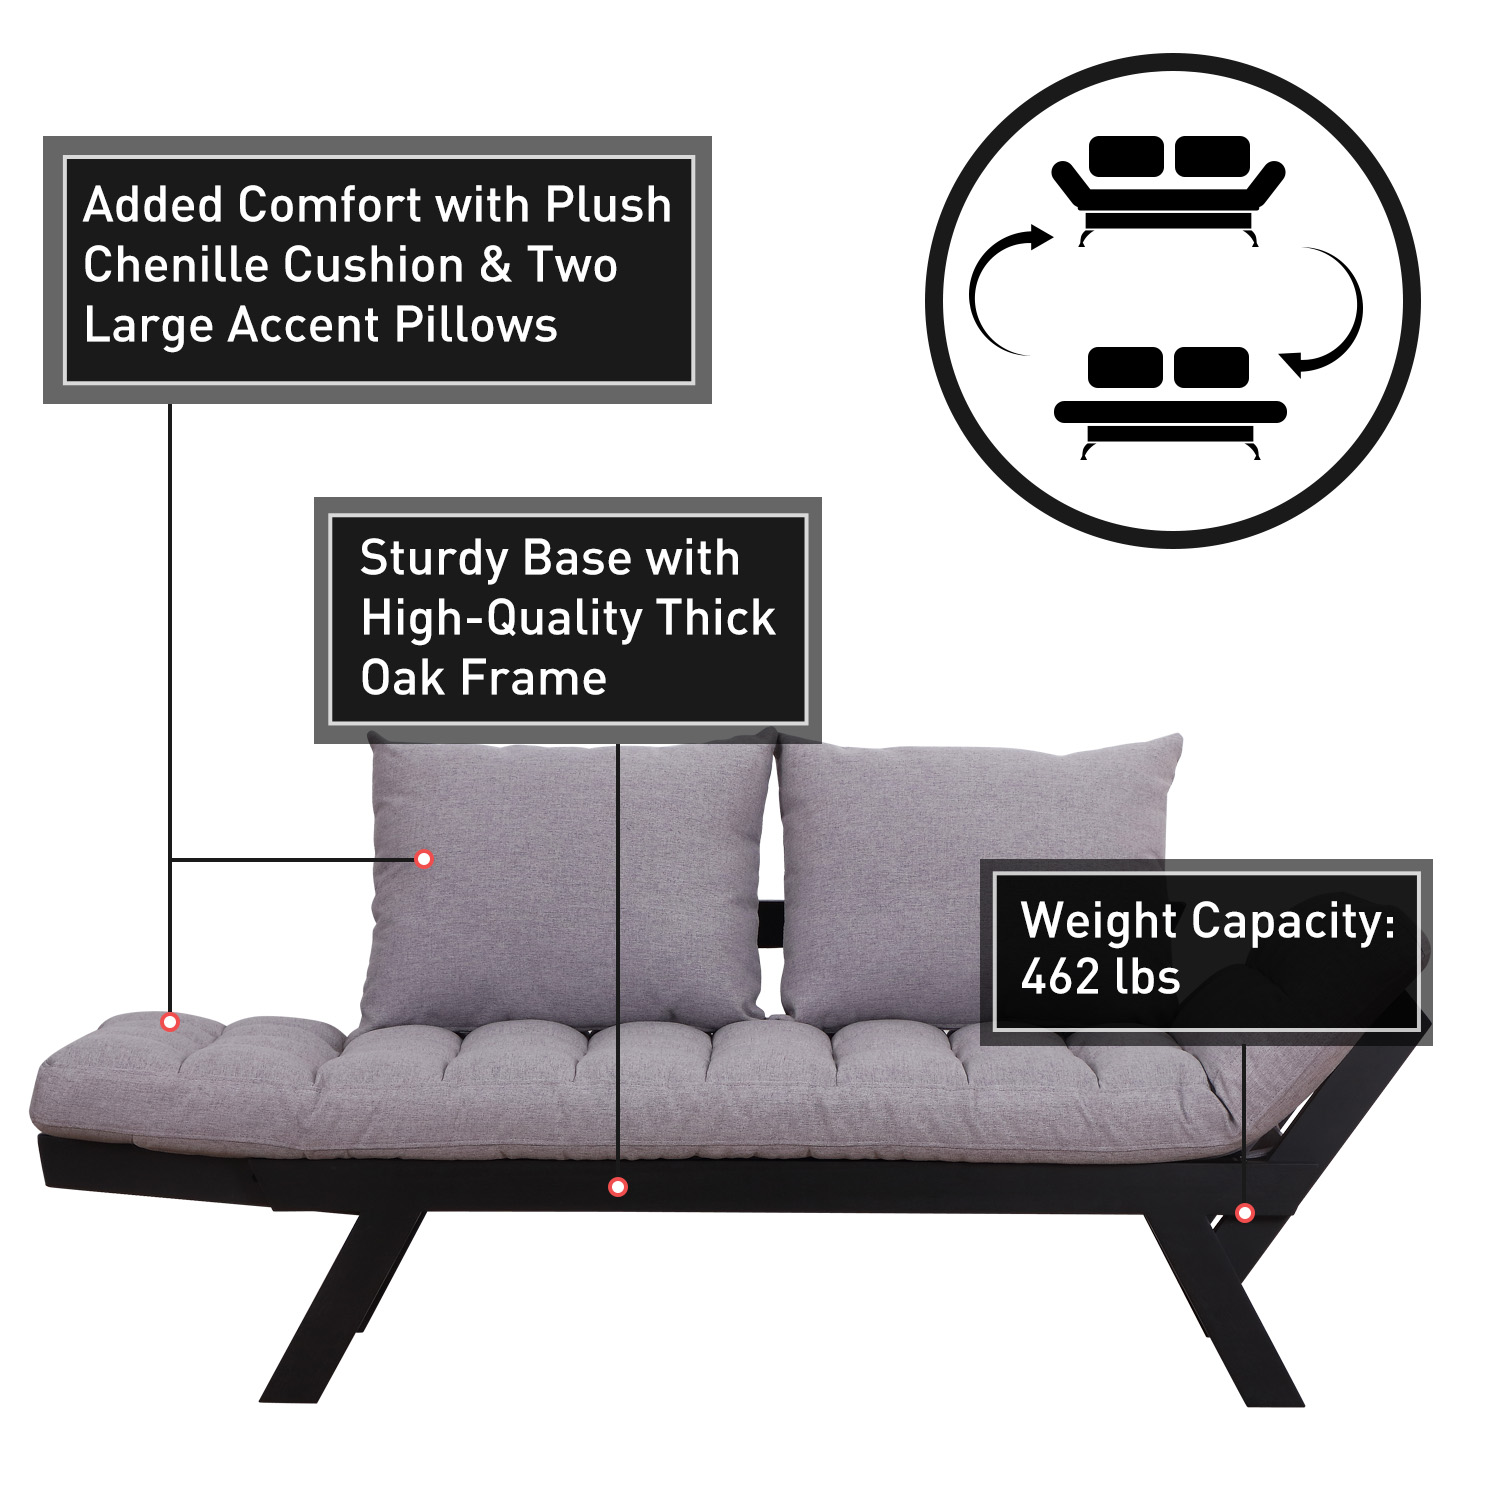 Convertible-Sofa-Bed-Sleeper-Couch-Chaise-Lounge-Chair-Adjustable-Padded-Pillow thumbnail 31